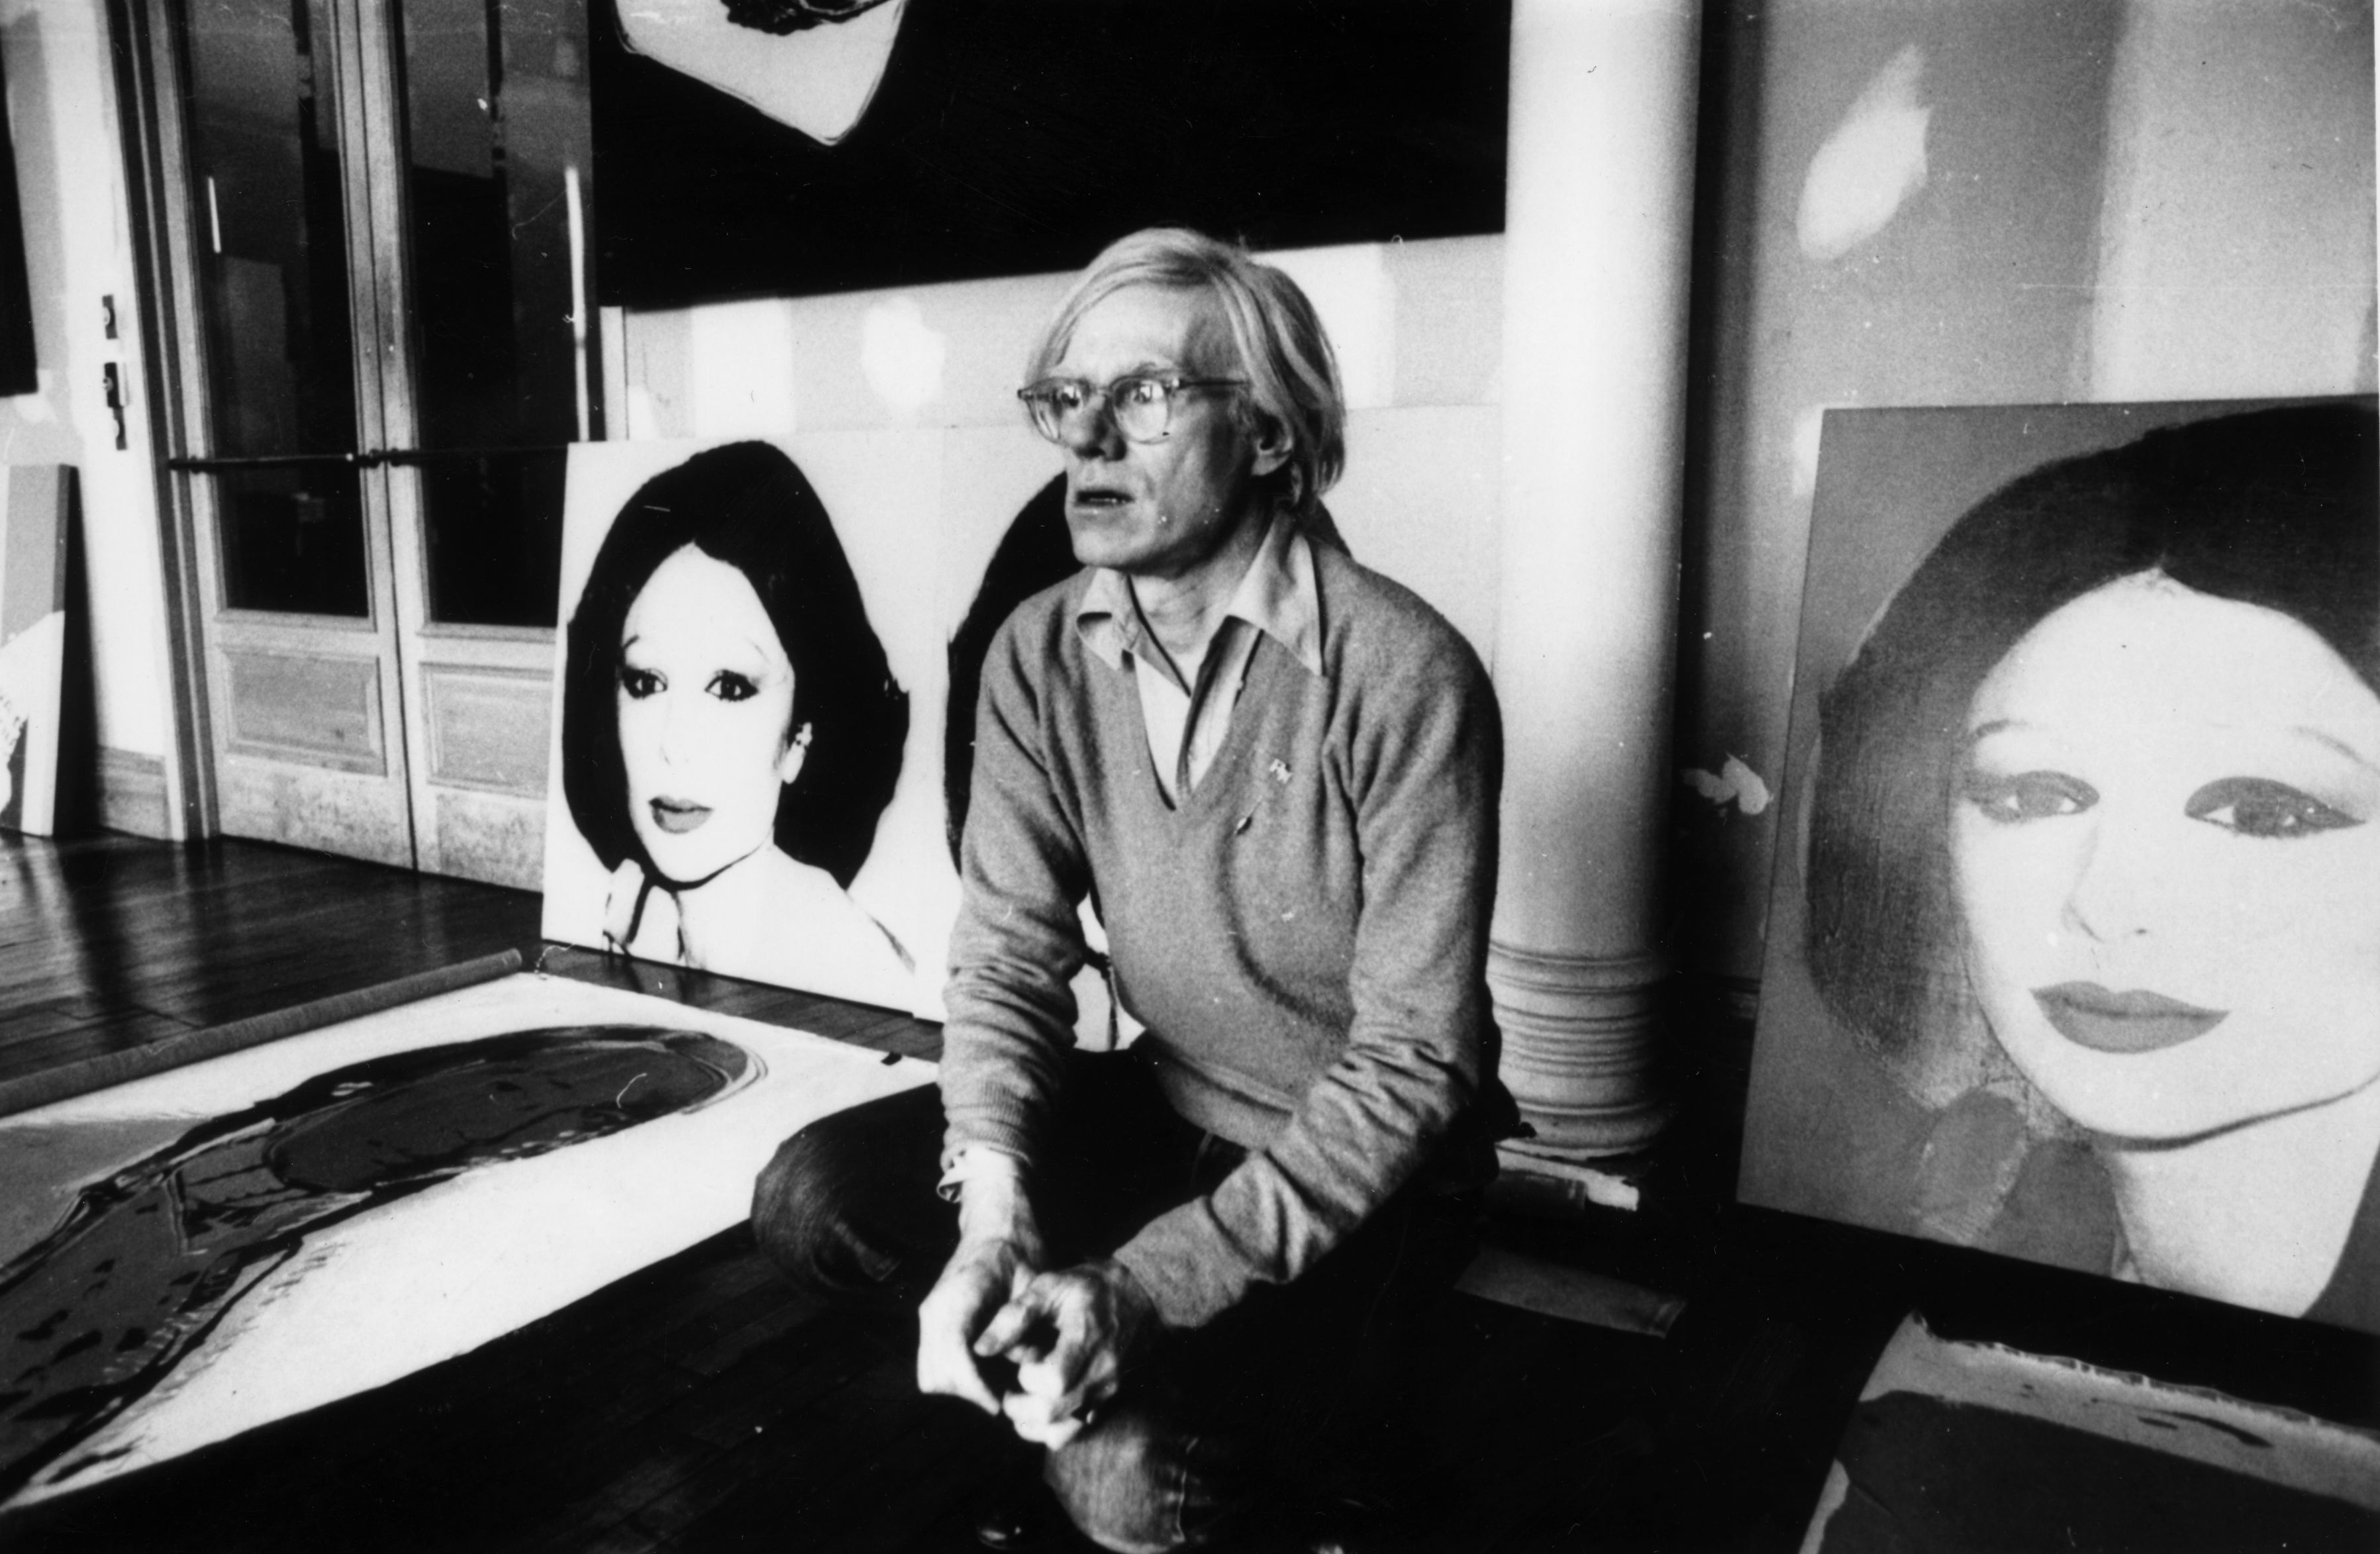 Artist Andy Warhol (1928 - 1987) in New York with his latest work, 'Princess Of Iran'. (Photo by Graham Wood/Getty Images)